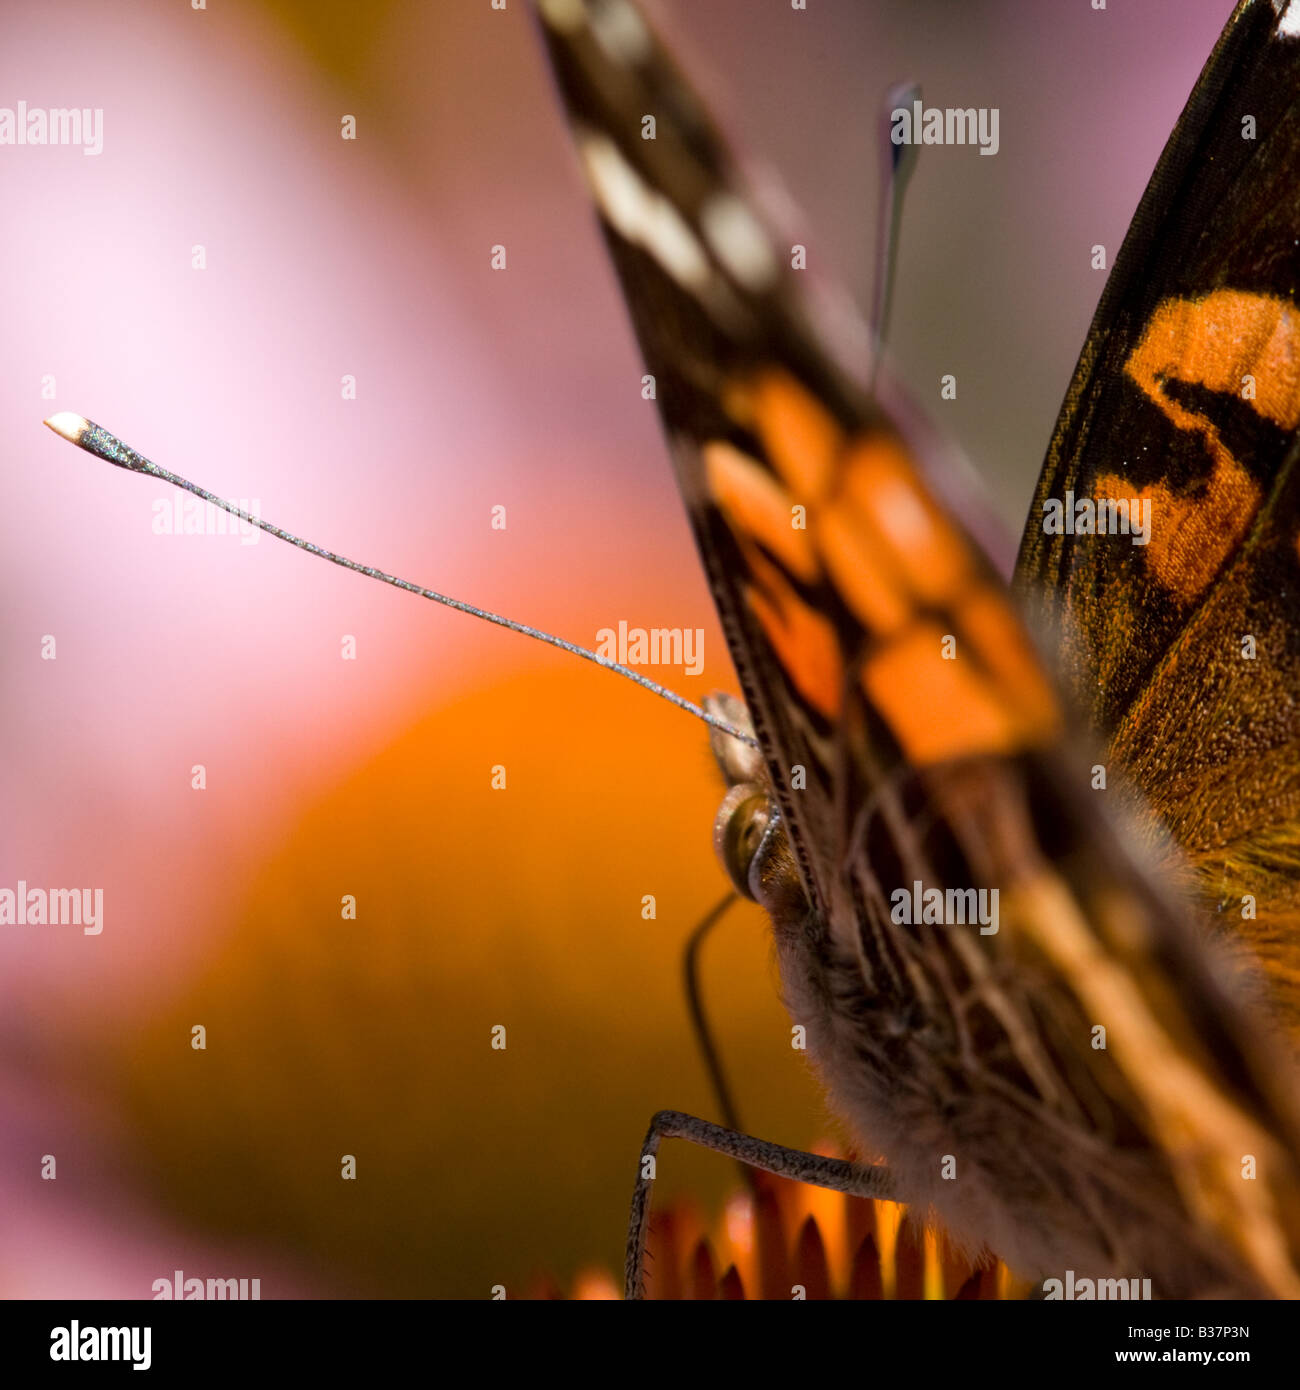 Macro image of a butterfly - Stock Image